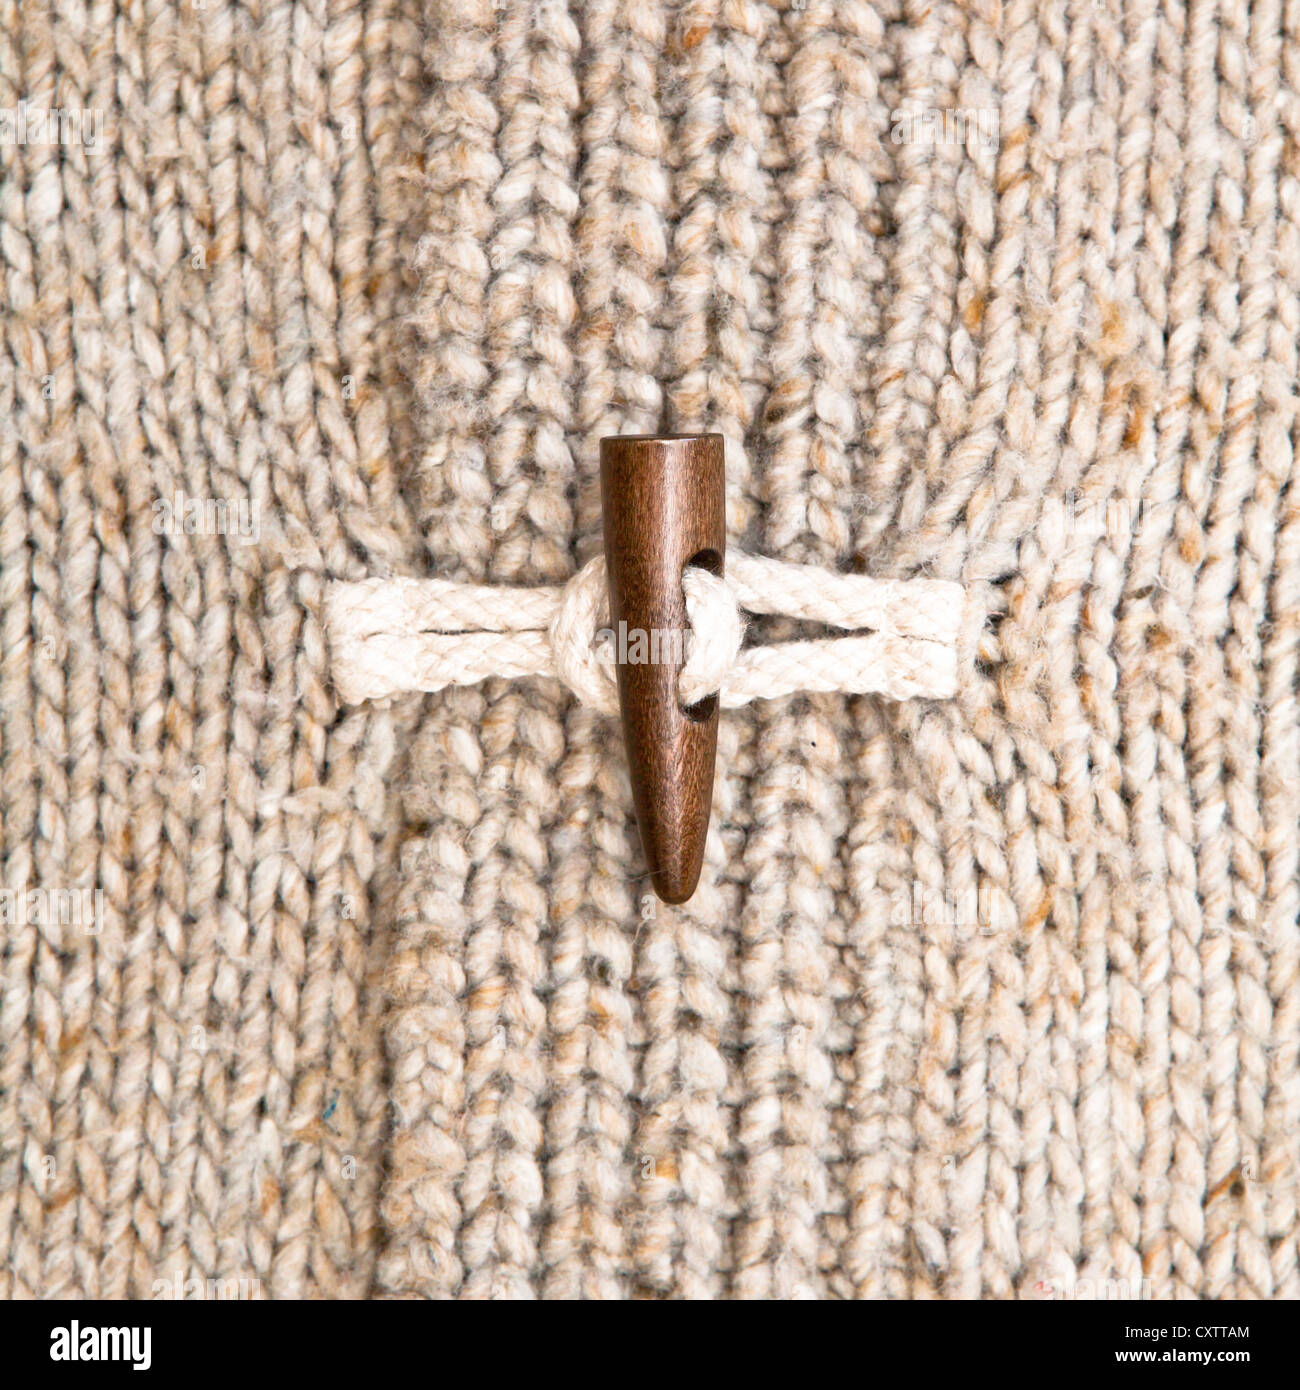 Close up of the toggle on a warm winter jumper - Stock Image